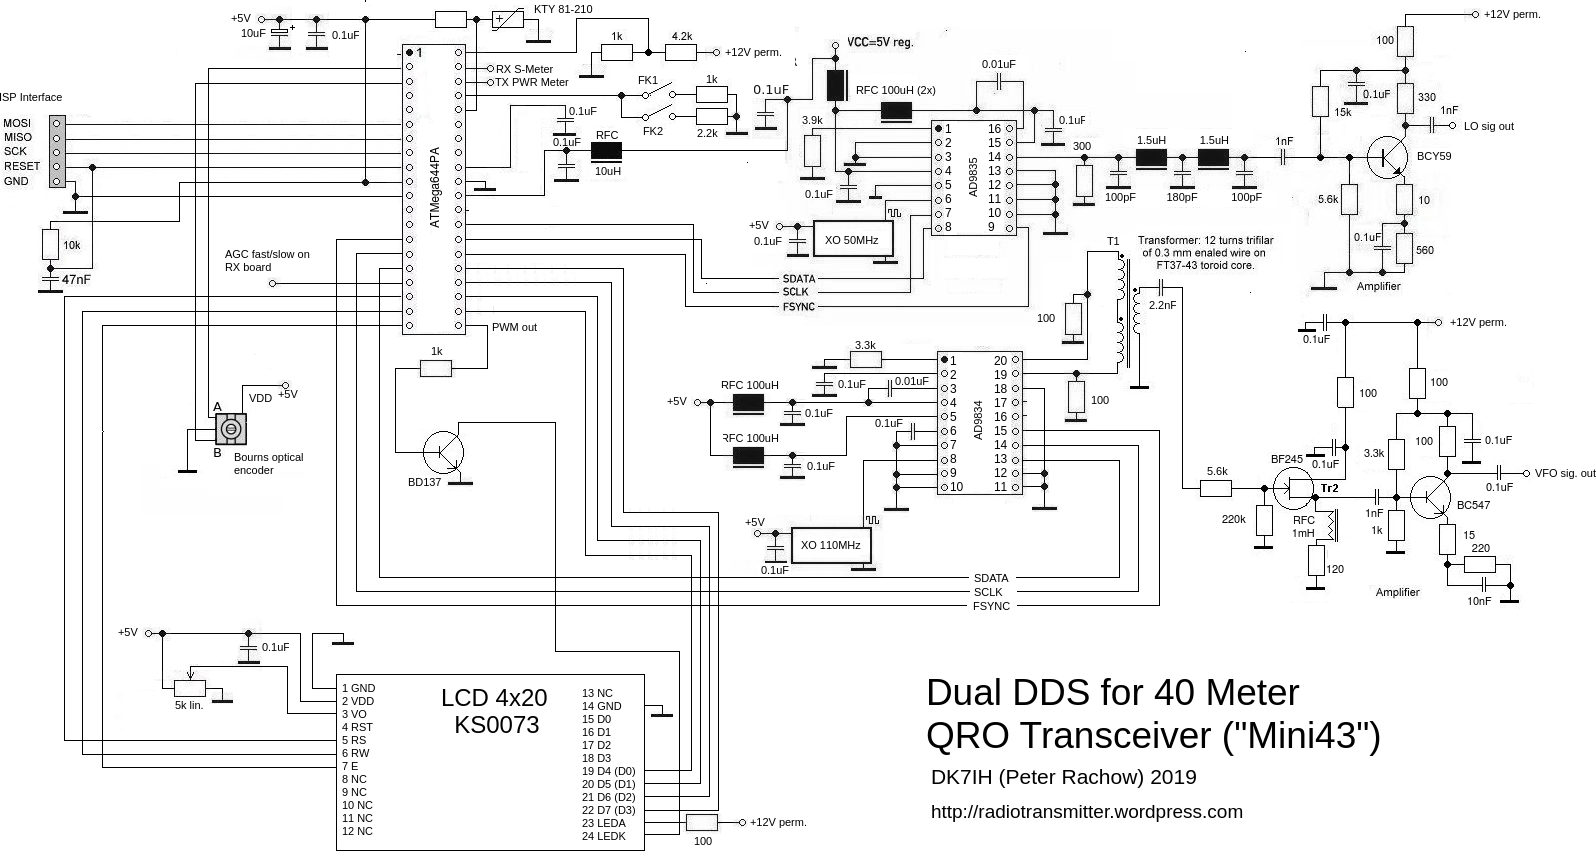 DK7IH QRO SSB transceiver for 7MHz/40m - Dual DDS (VFO and LO)